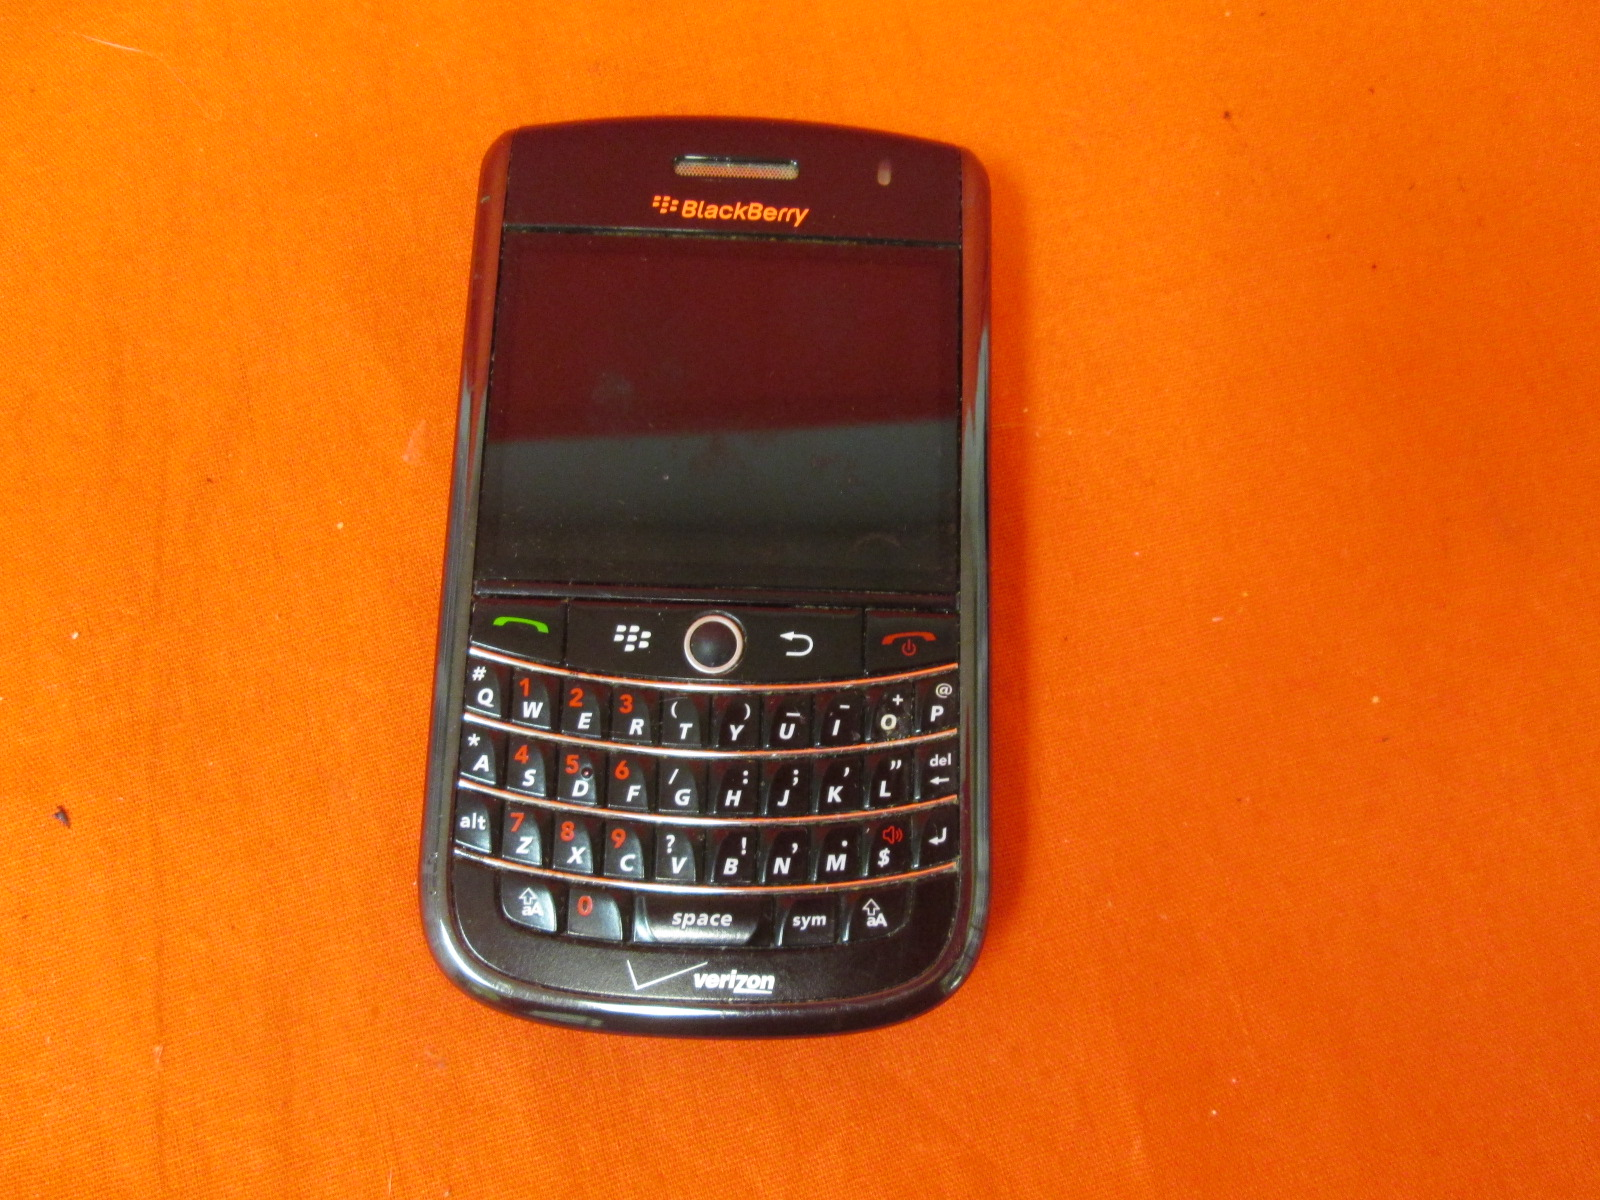 BlackBerry Curve 9360 GSM Phone Incomplete